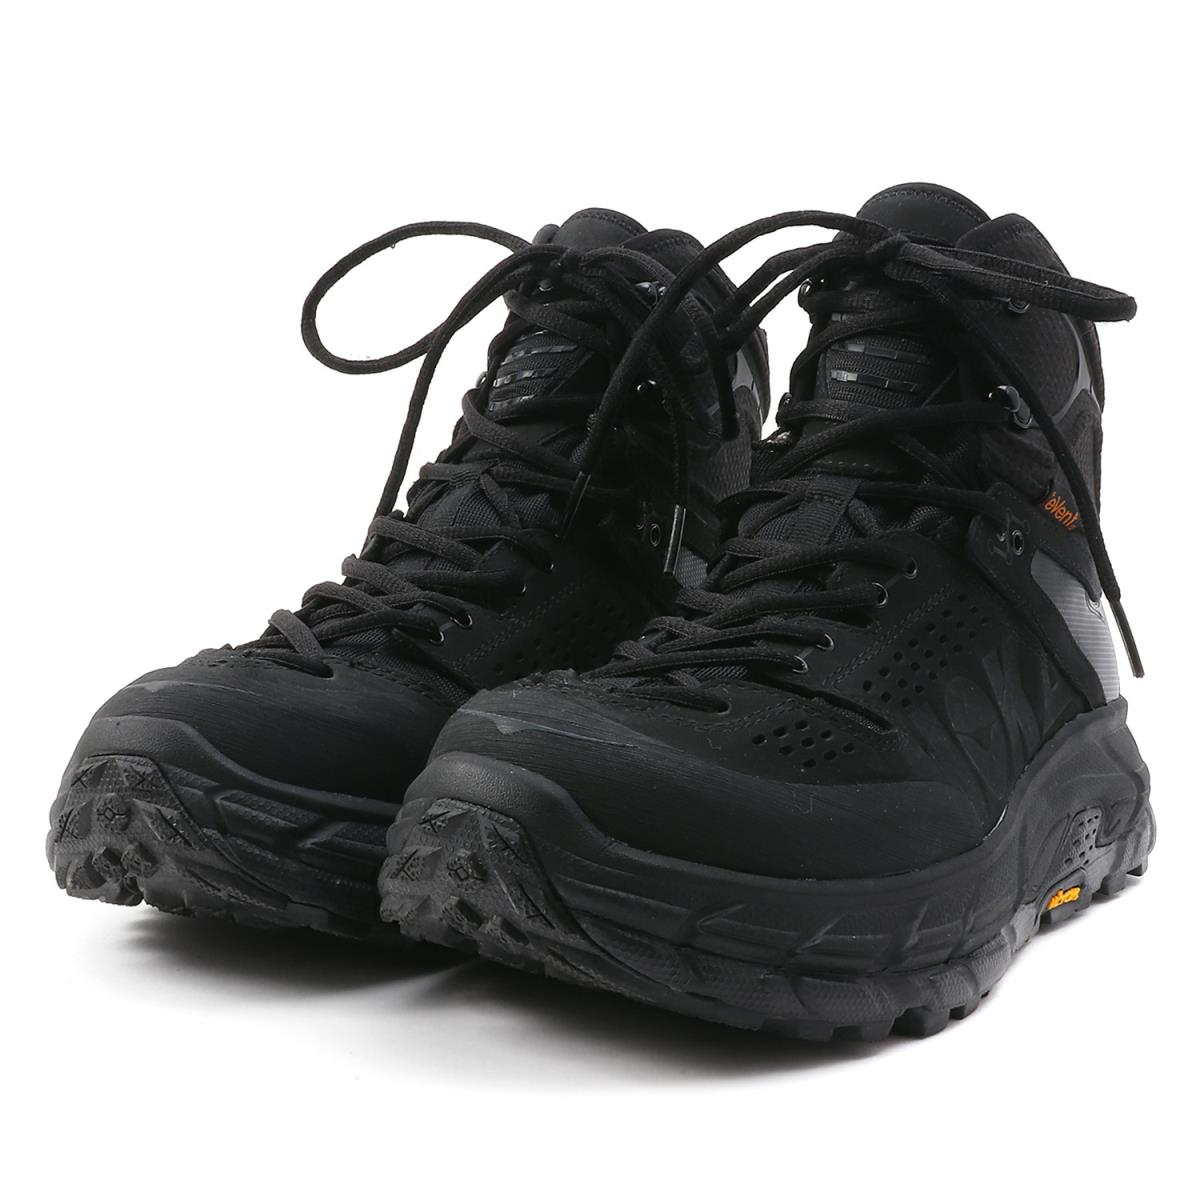 8864e6eccfe HOKA ONE ONE (ホカオネオネ) toe ultra high waterproof boots (TOR ULTRA HI WP)  black US10(28cm)